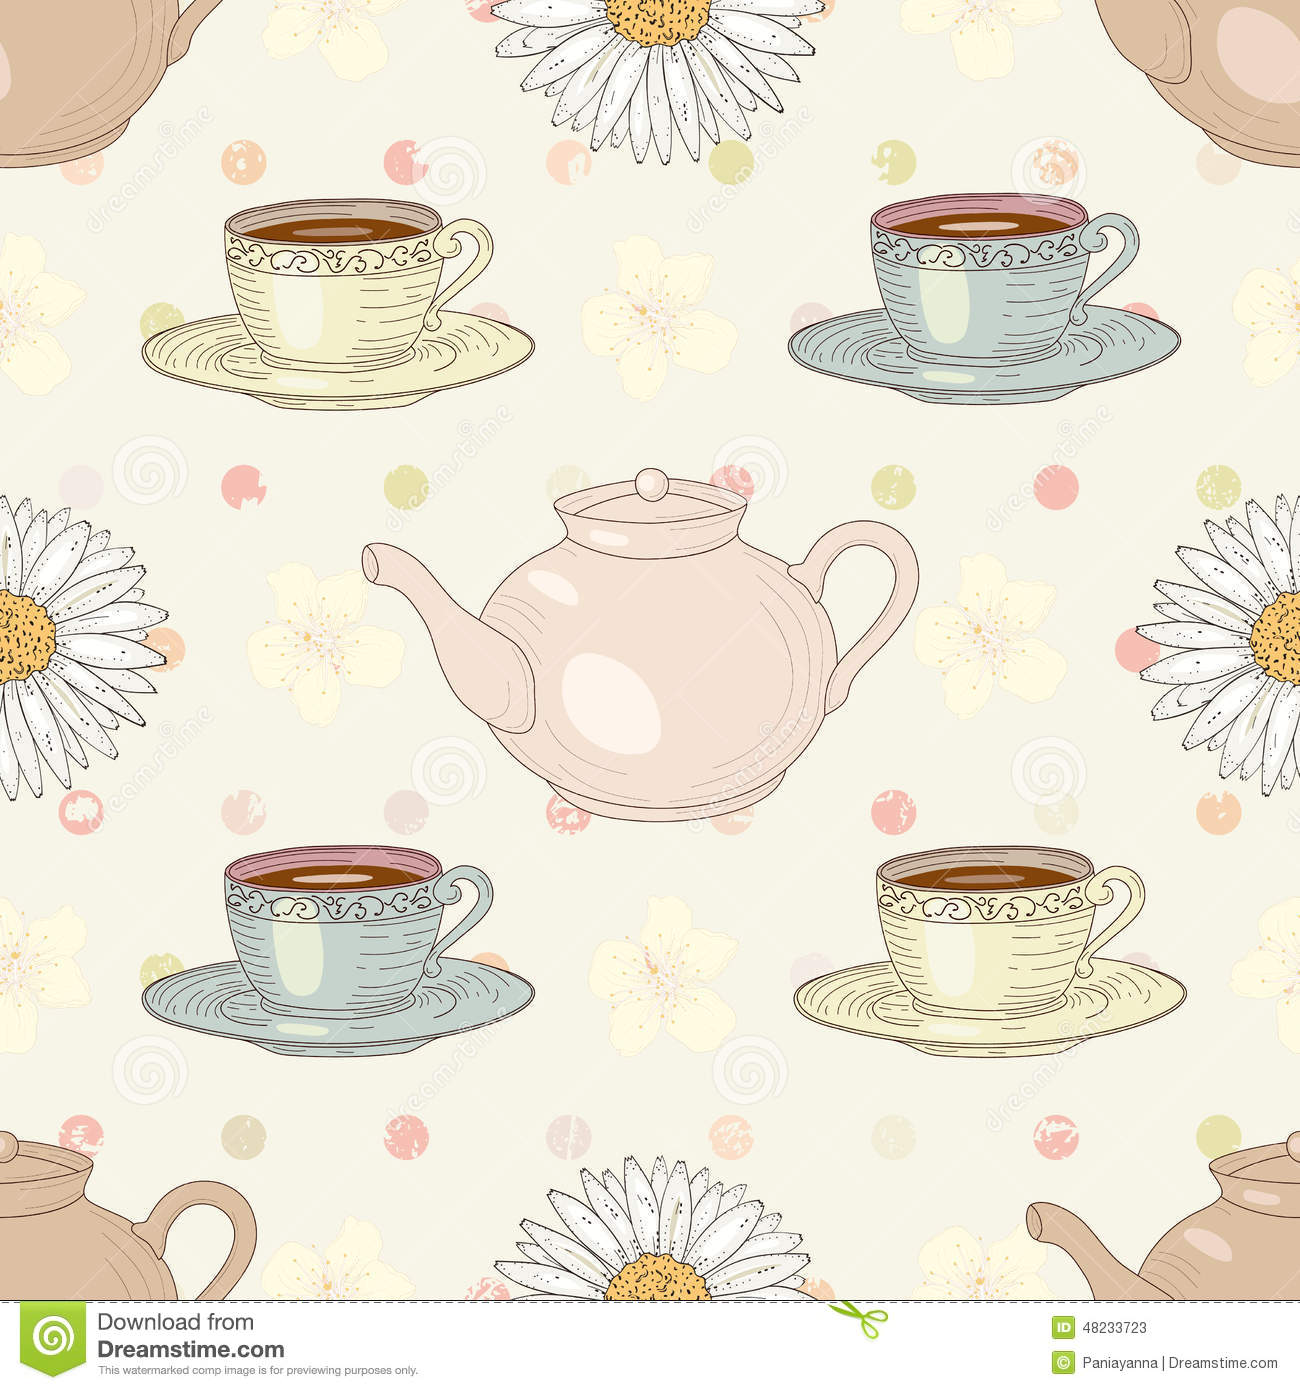 Tea party background royalty free stock photo image 28839215 - Jpg 1300x1390 Tea Party Background